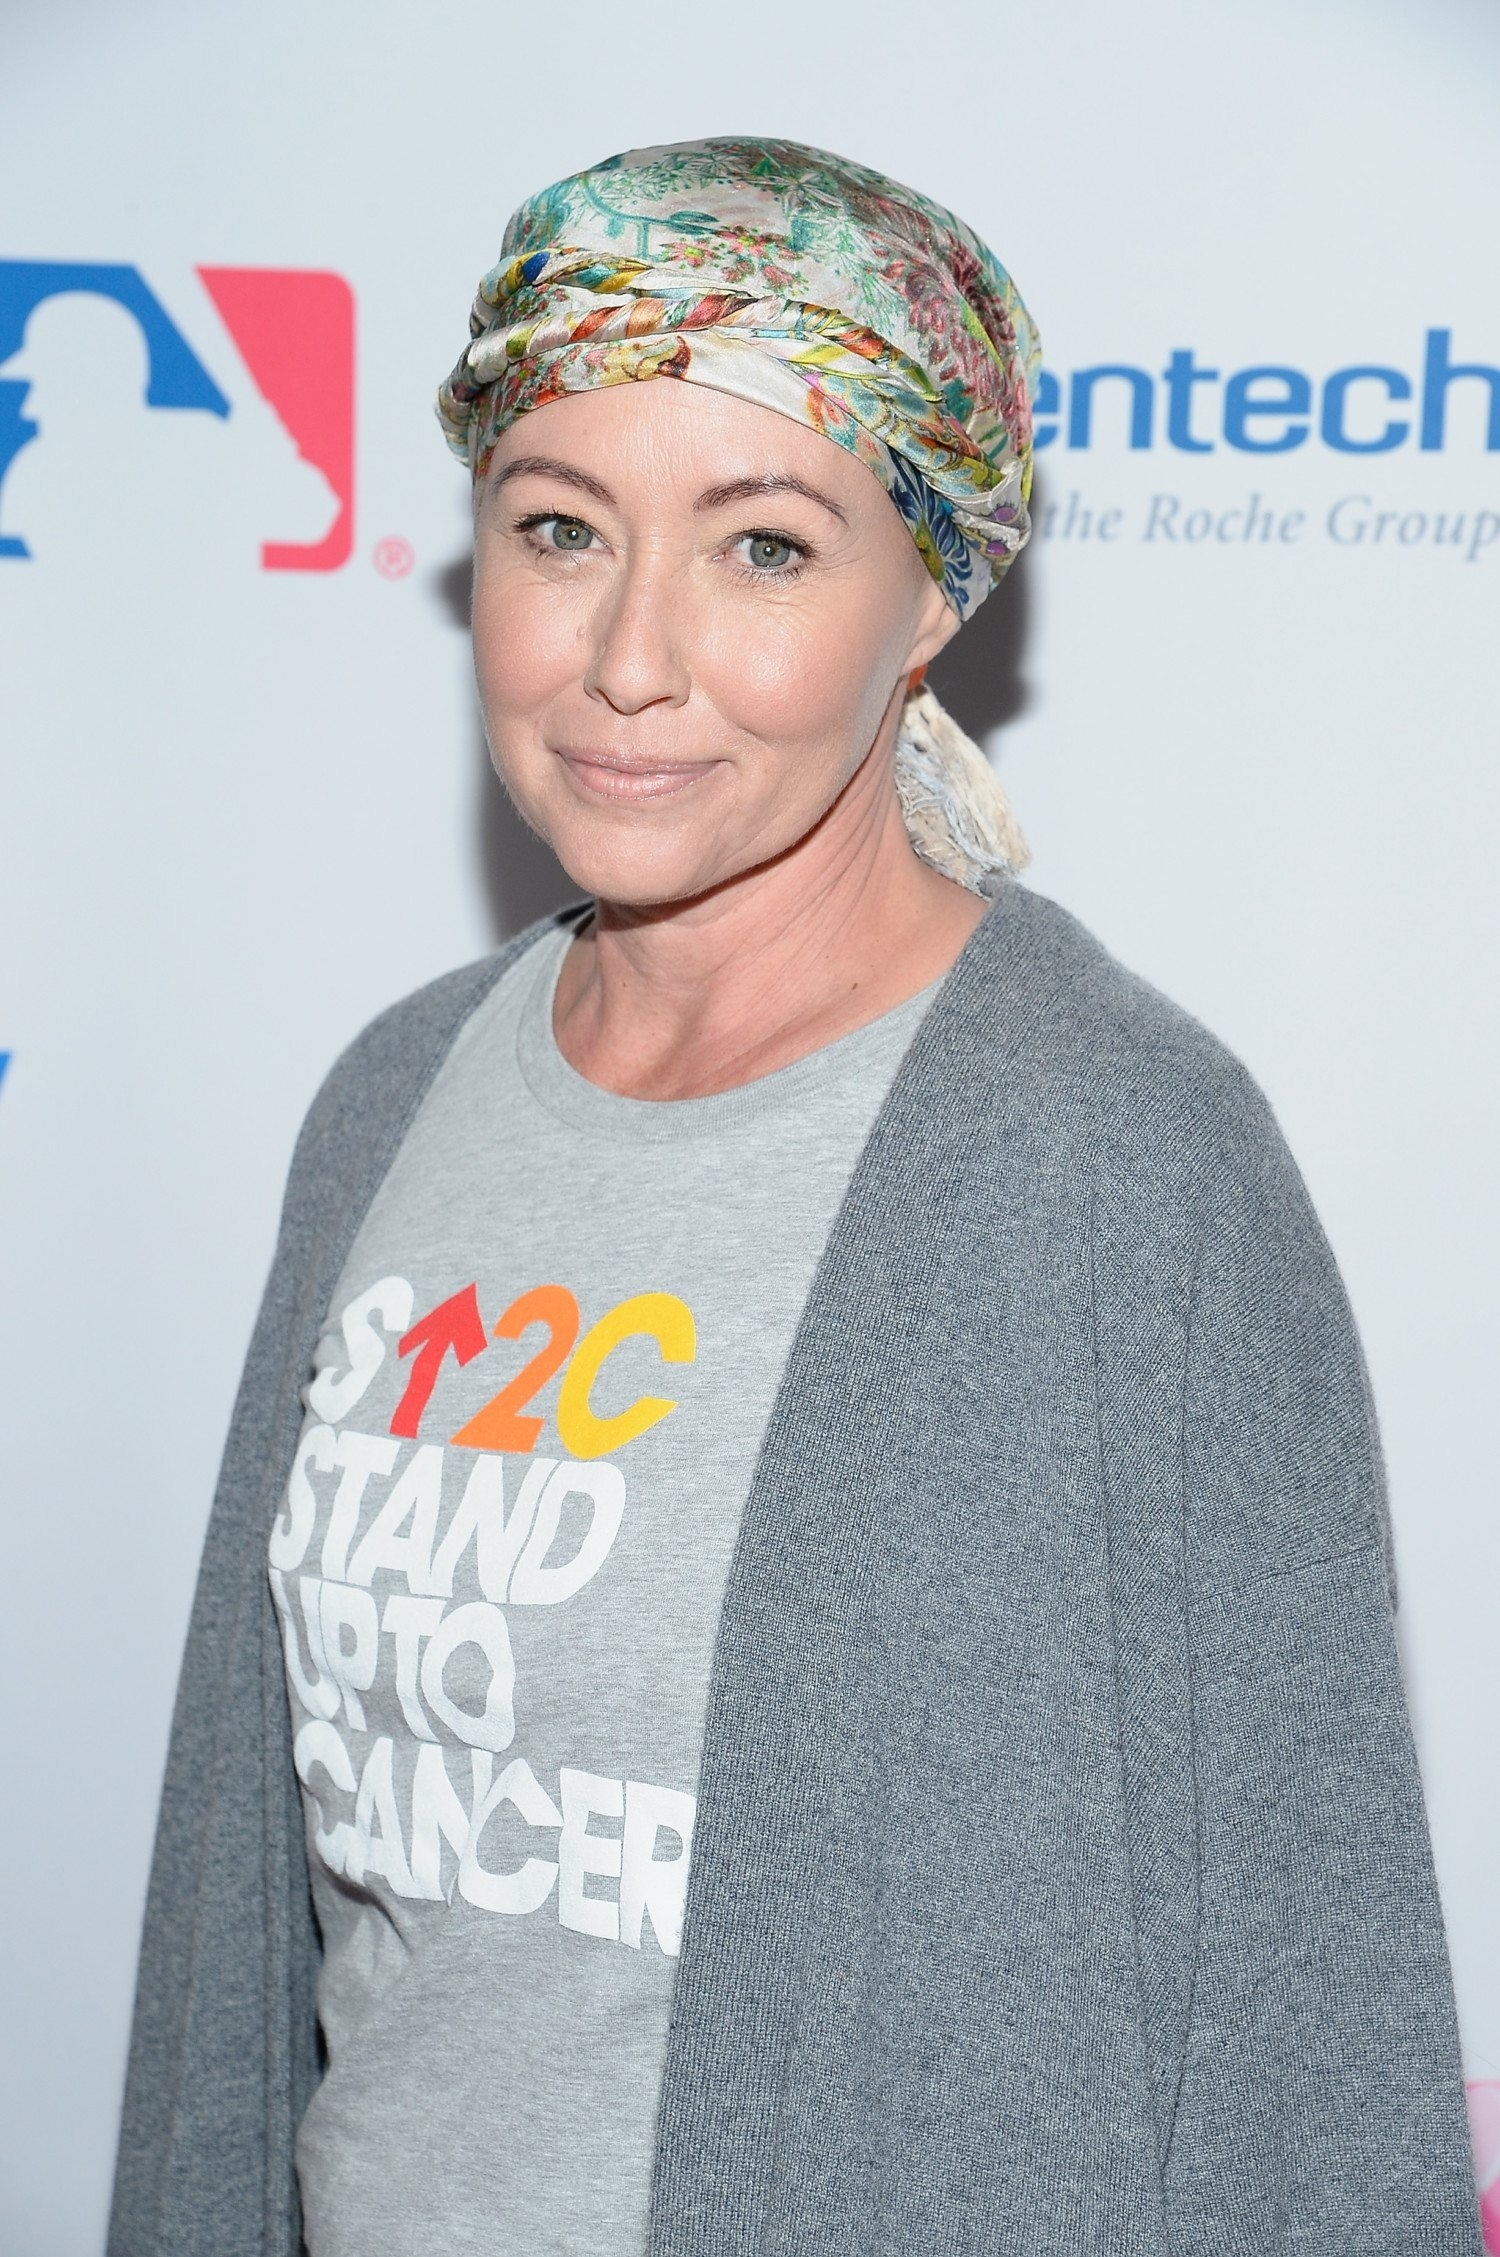 Shannen Doherty Has A Pixie Cut After Chemotherapy - Simplemost regarding Pixie Cuts For Chemo Patients